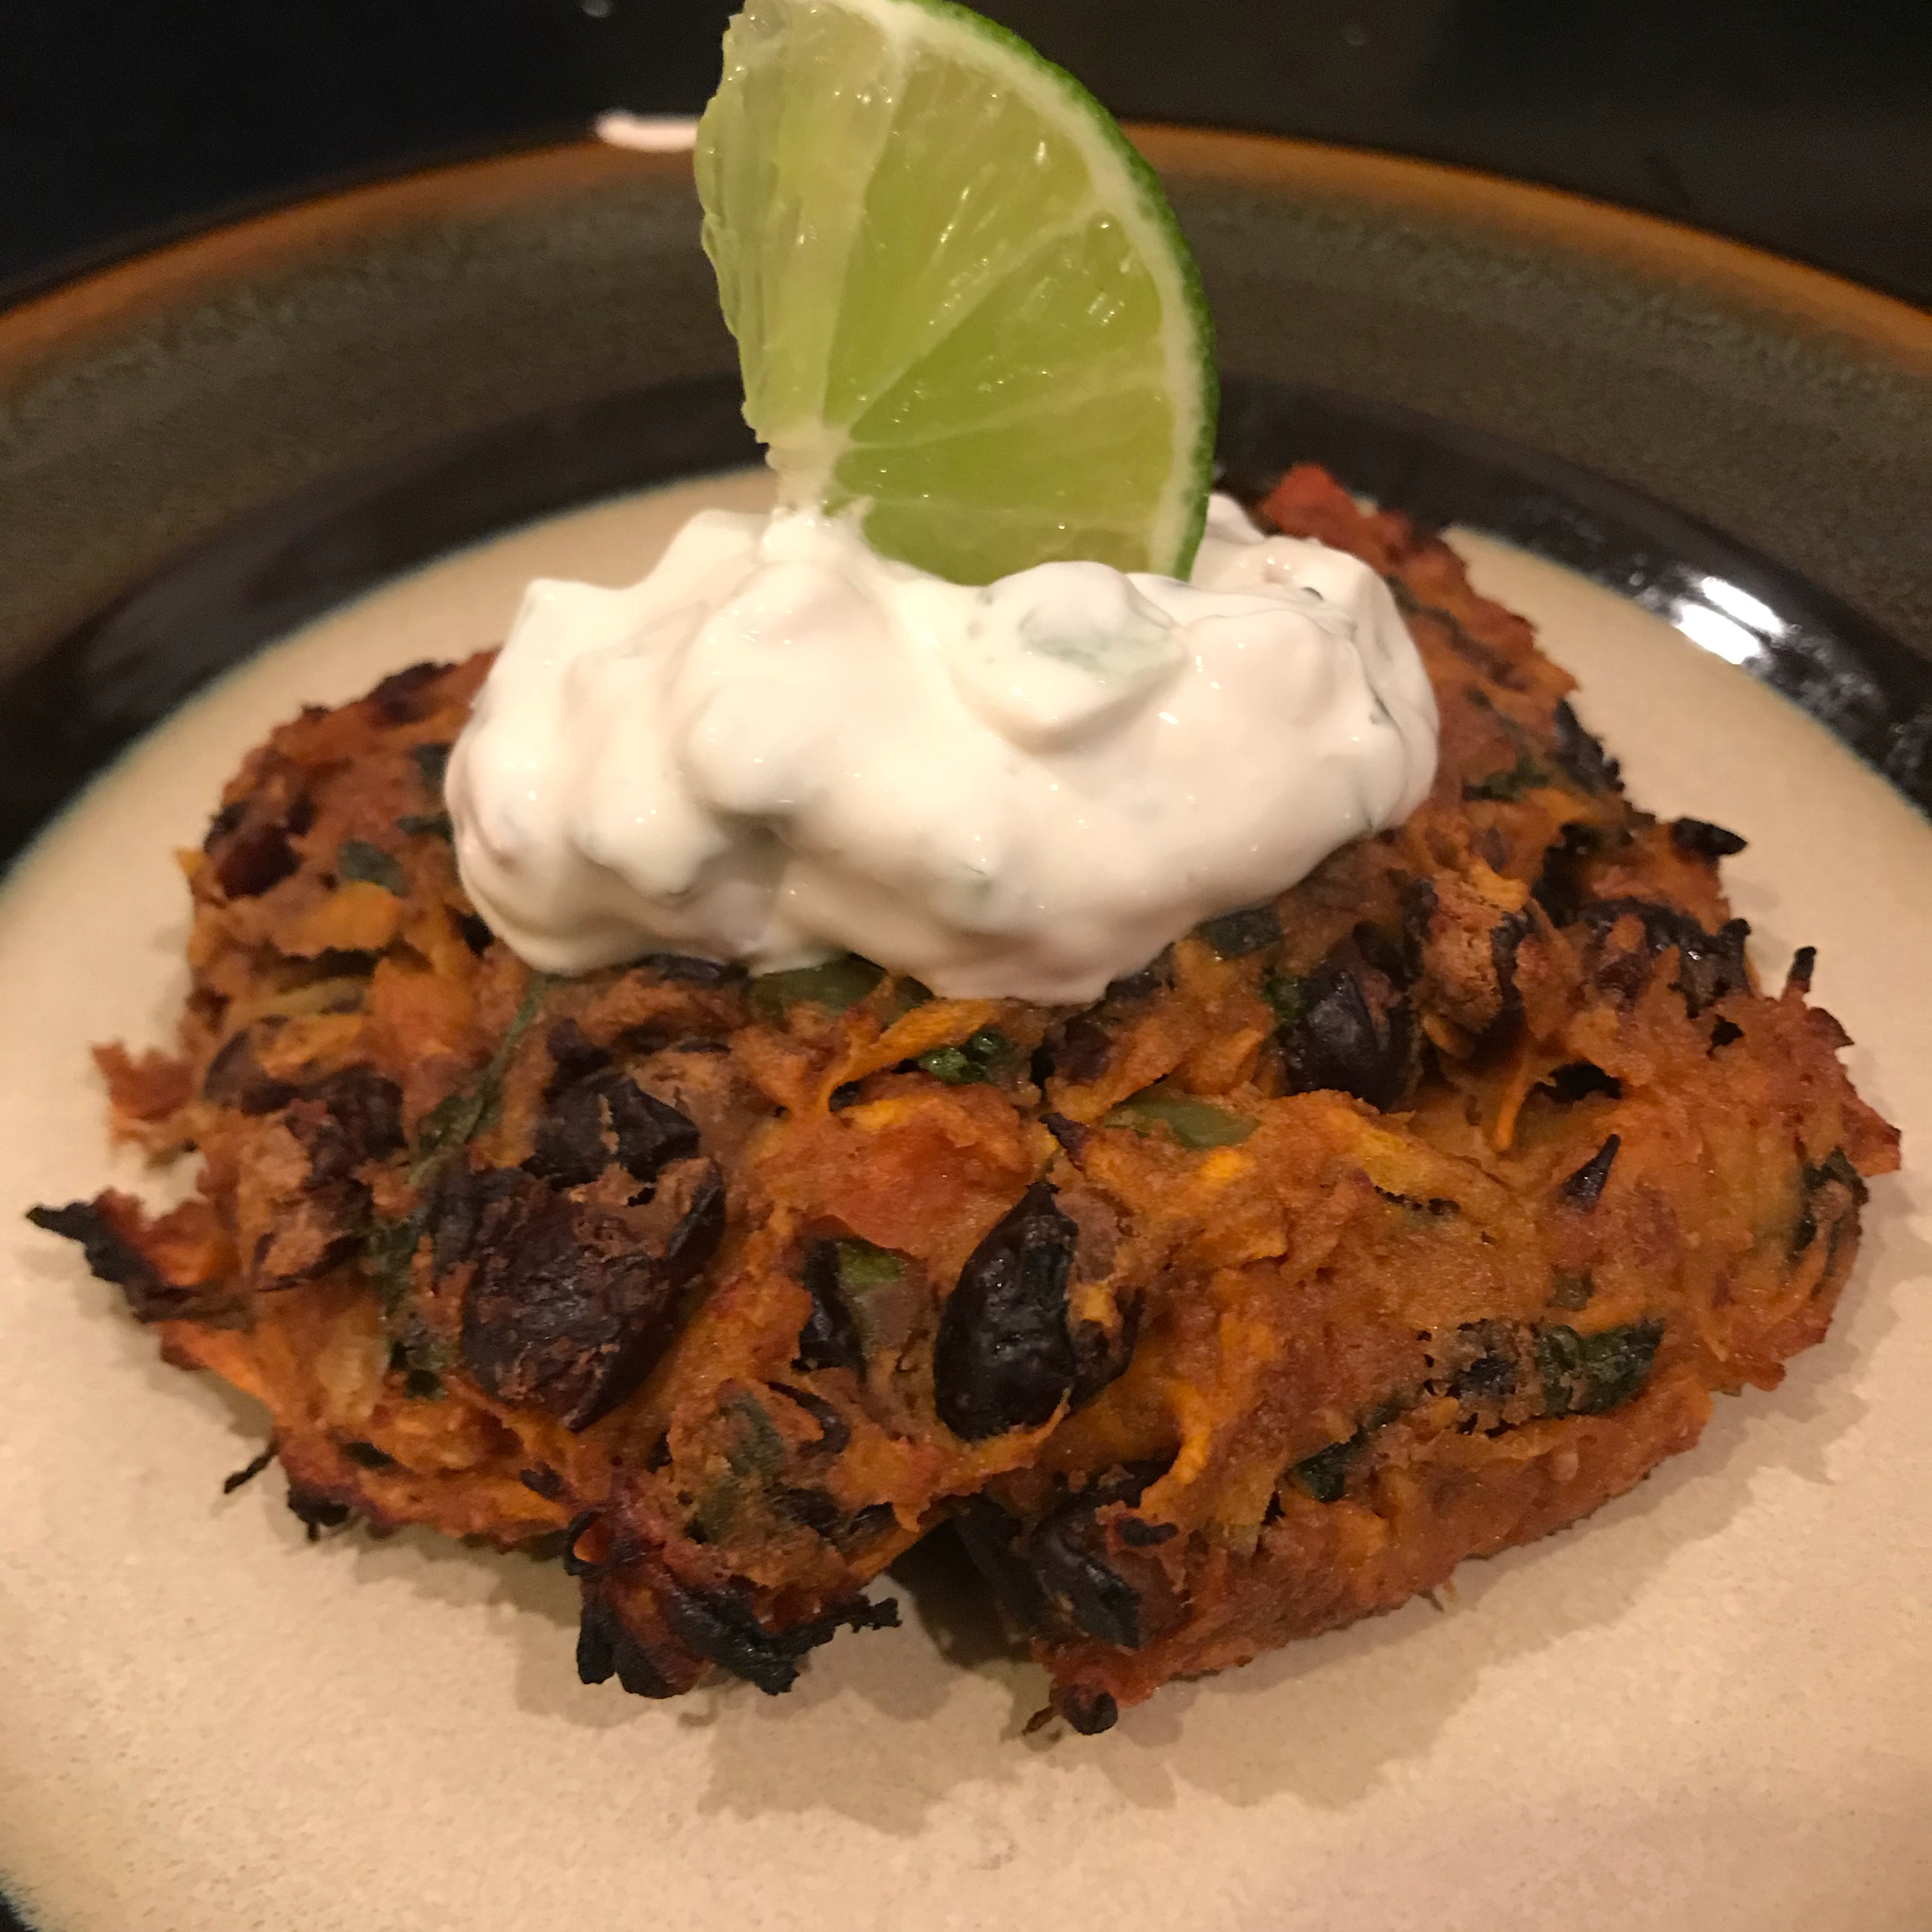 Spicy Black Bean Cakes Mike B.